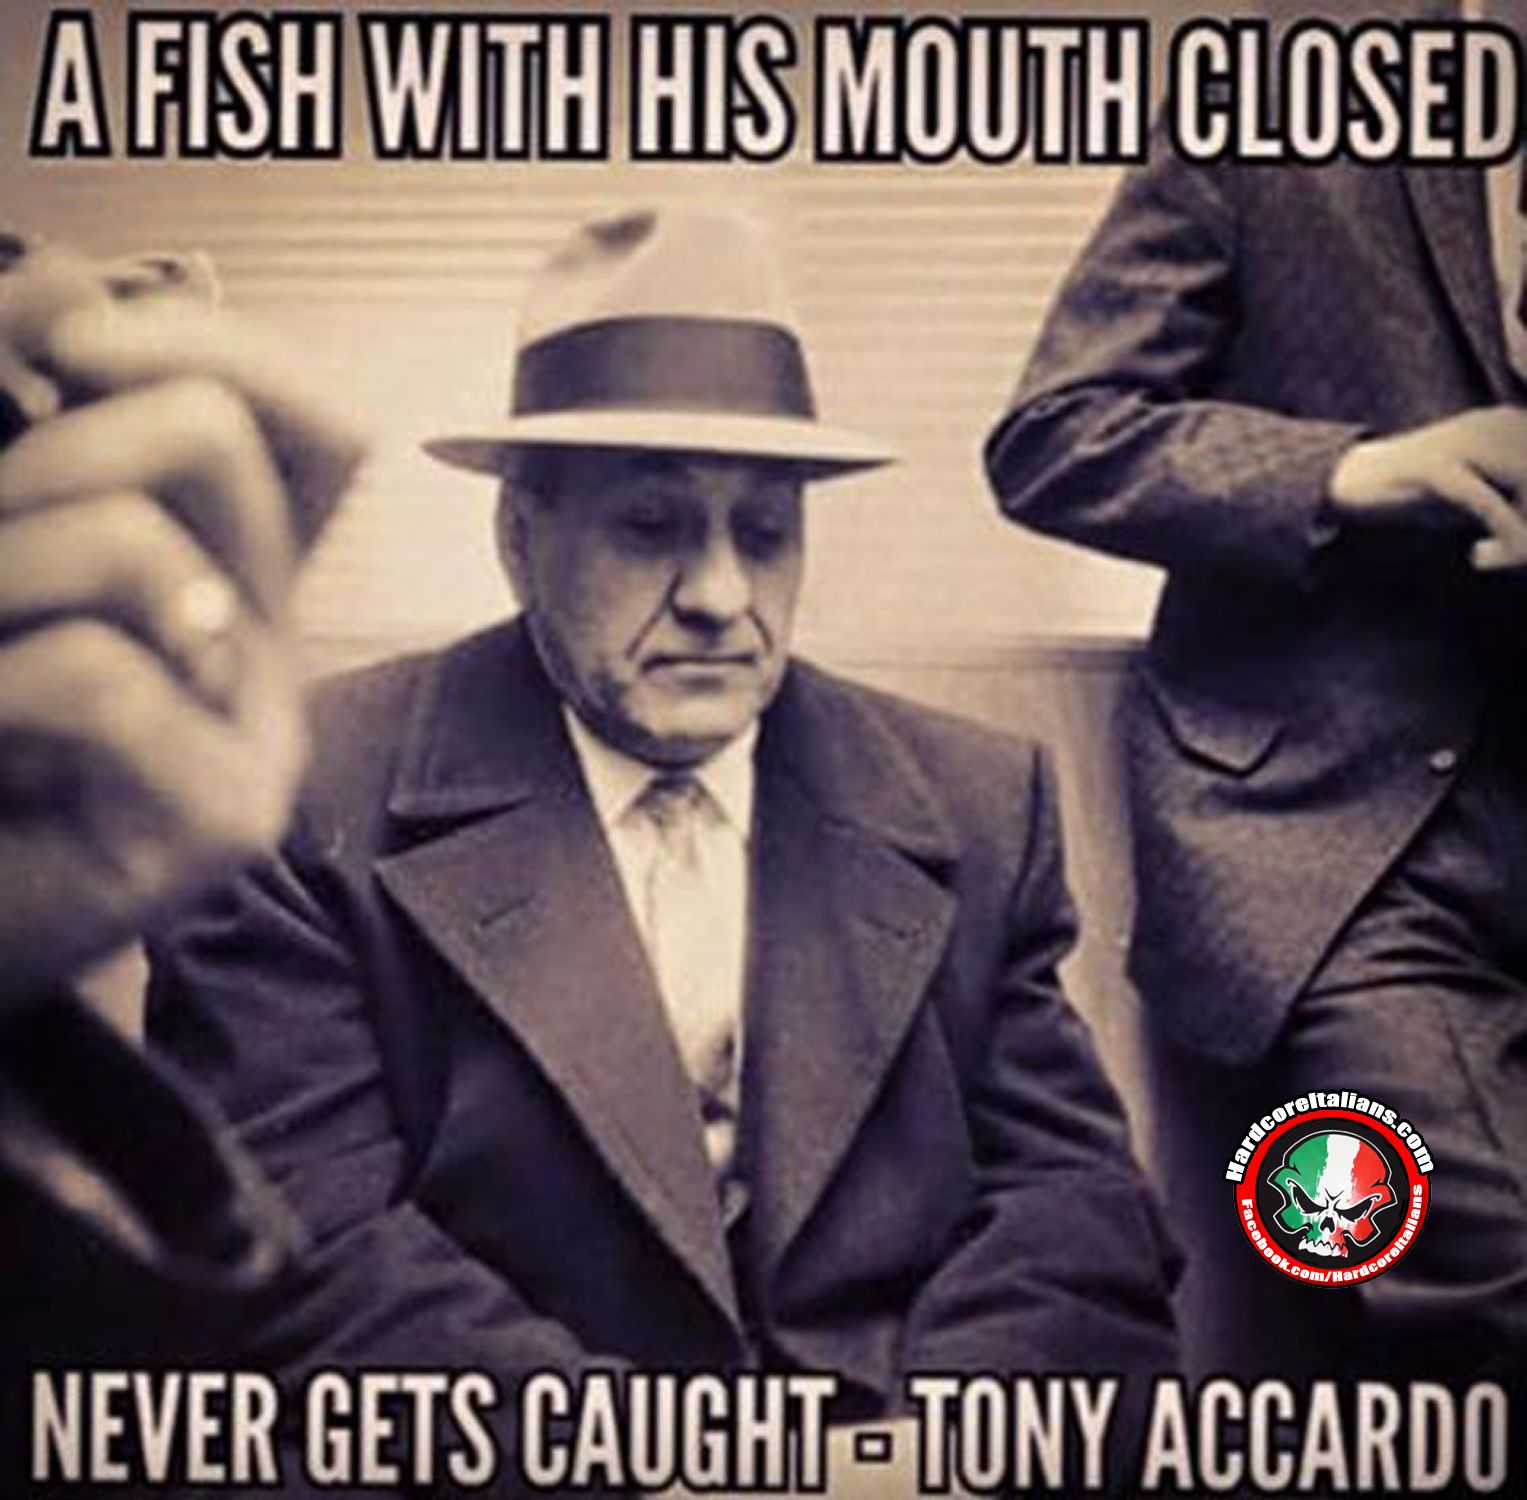 A fish with his mouth closed never gets caught (Italian